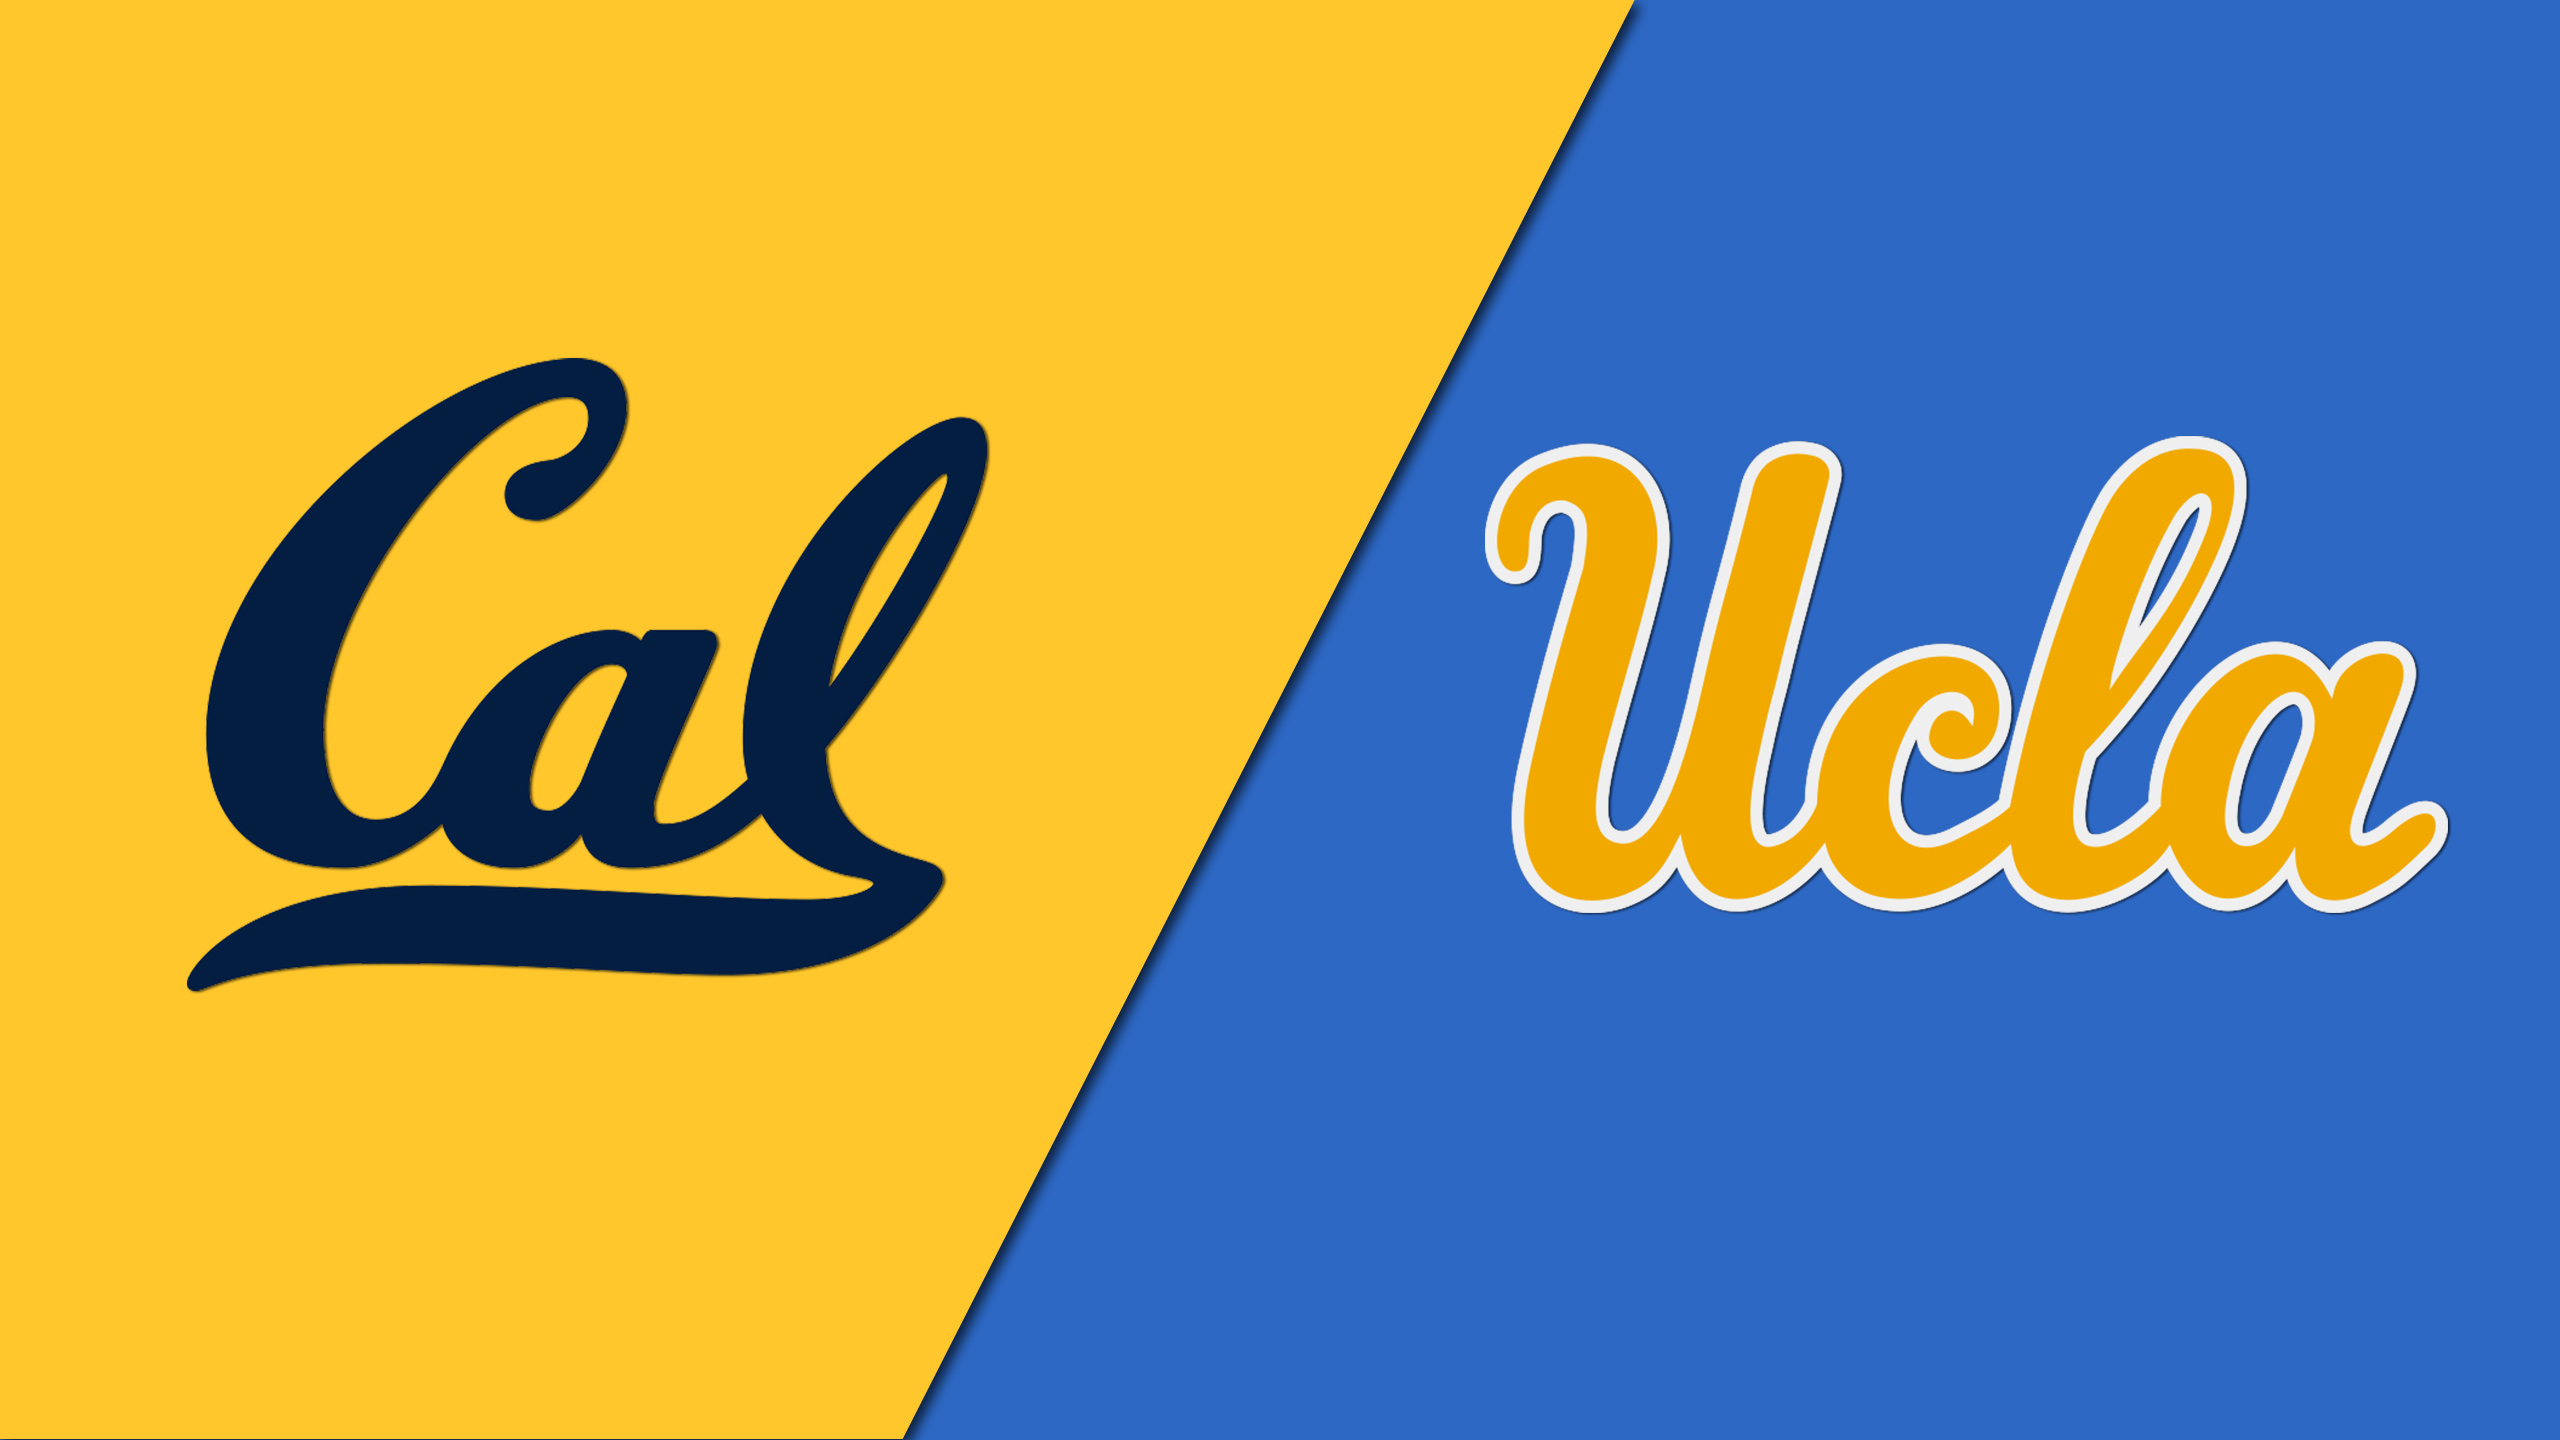 California Golden Bears vs. UCLA Bruins - 03/08/2008 (re-air)